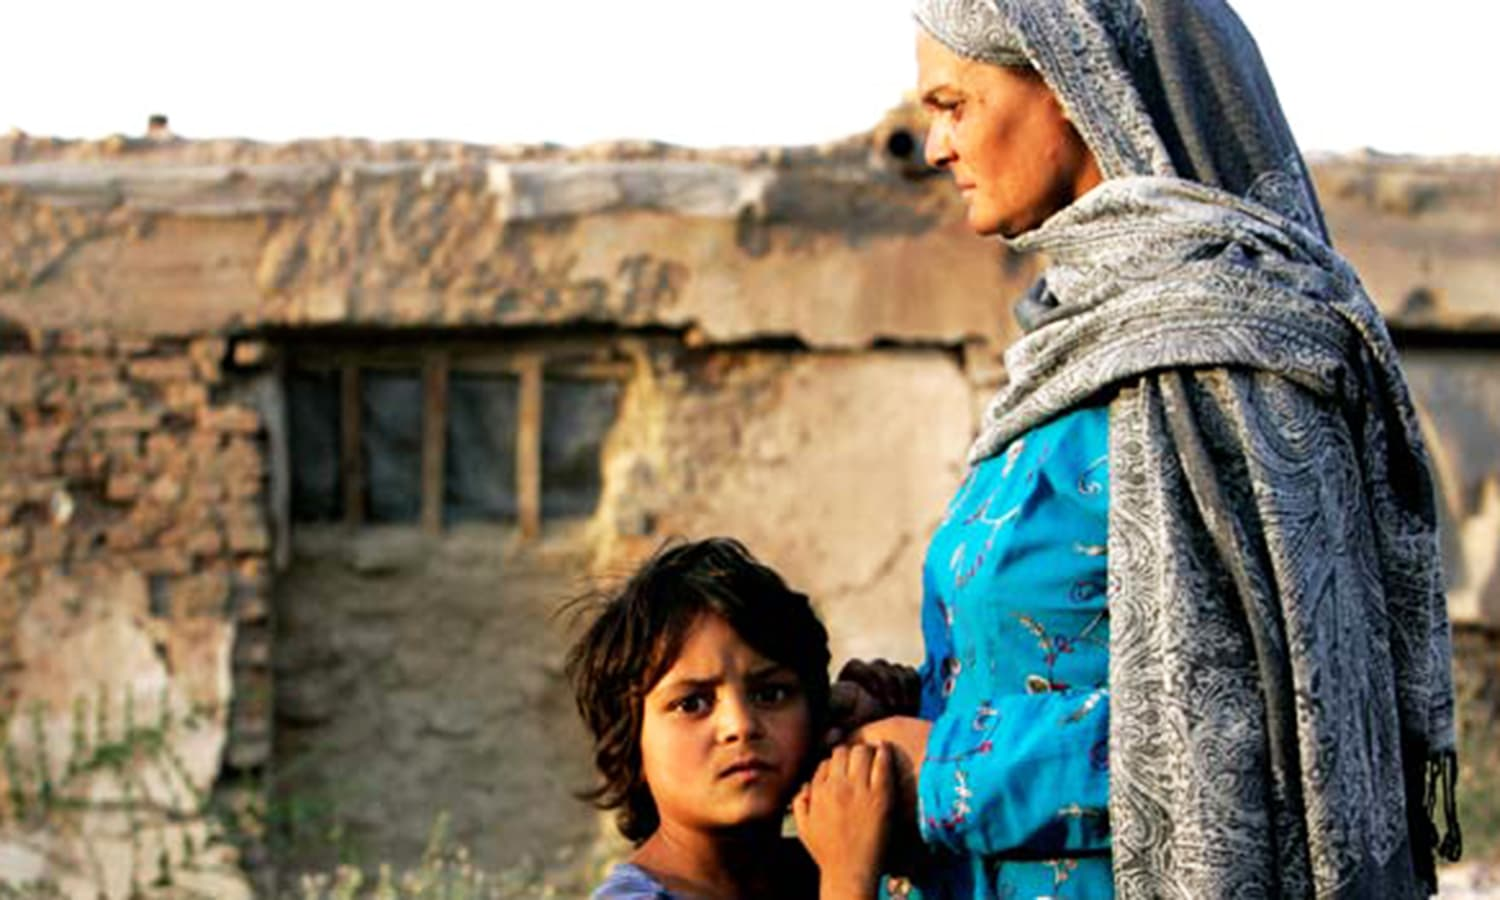 Afghan refugee Shapera, right, stands with her daughter. – AP/File